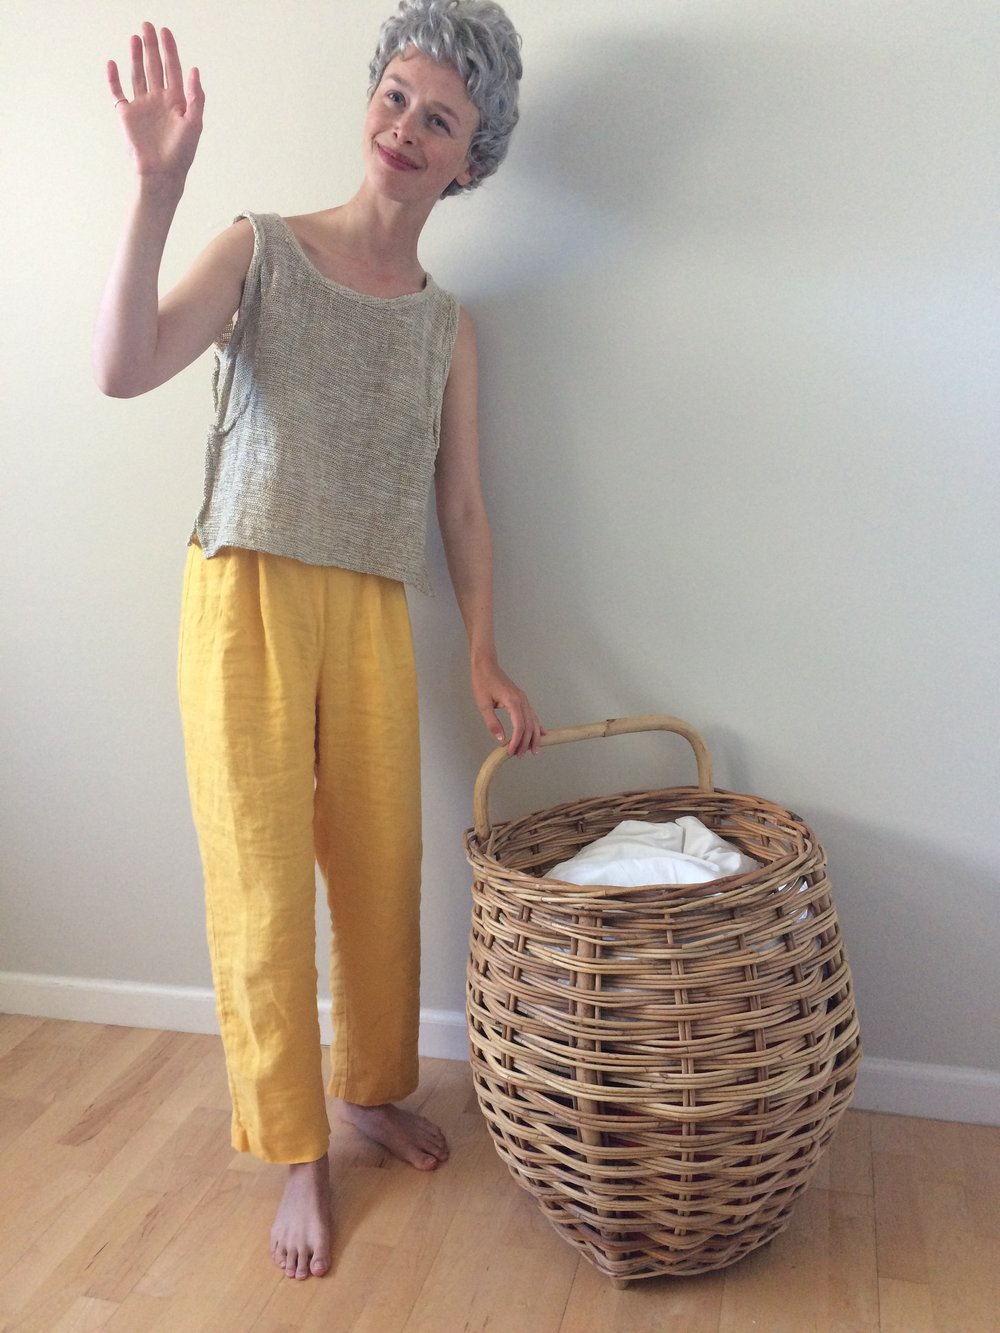 me in a very lightweight woven cotton top  two months later I got rid of this beautiful laundry basket - not practical.